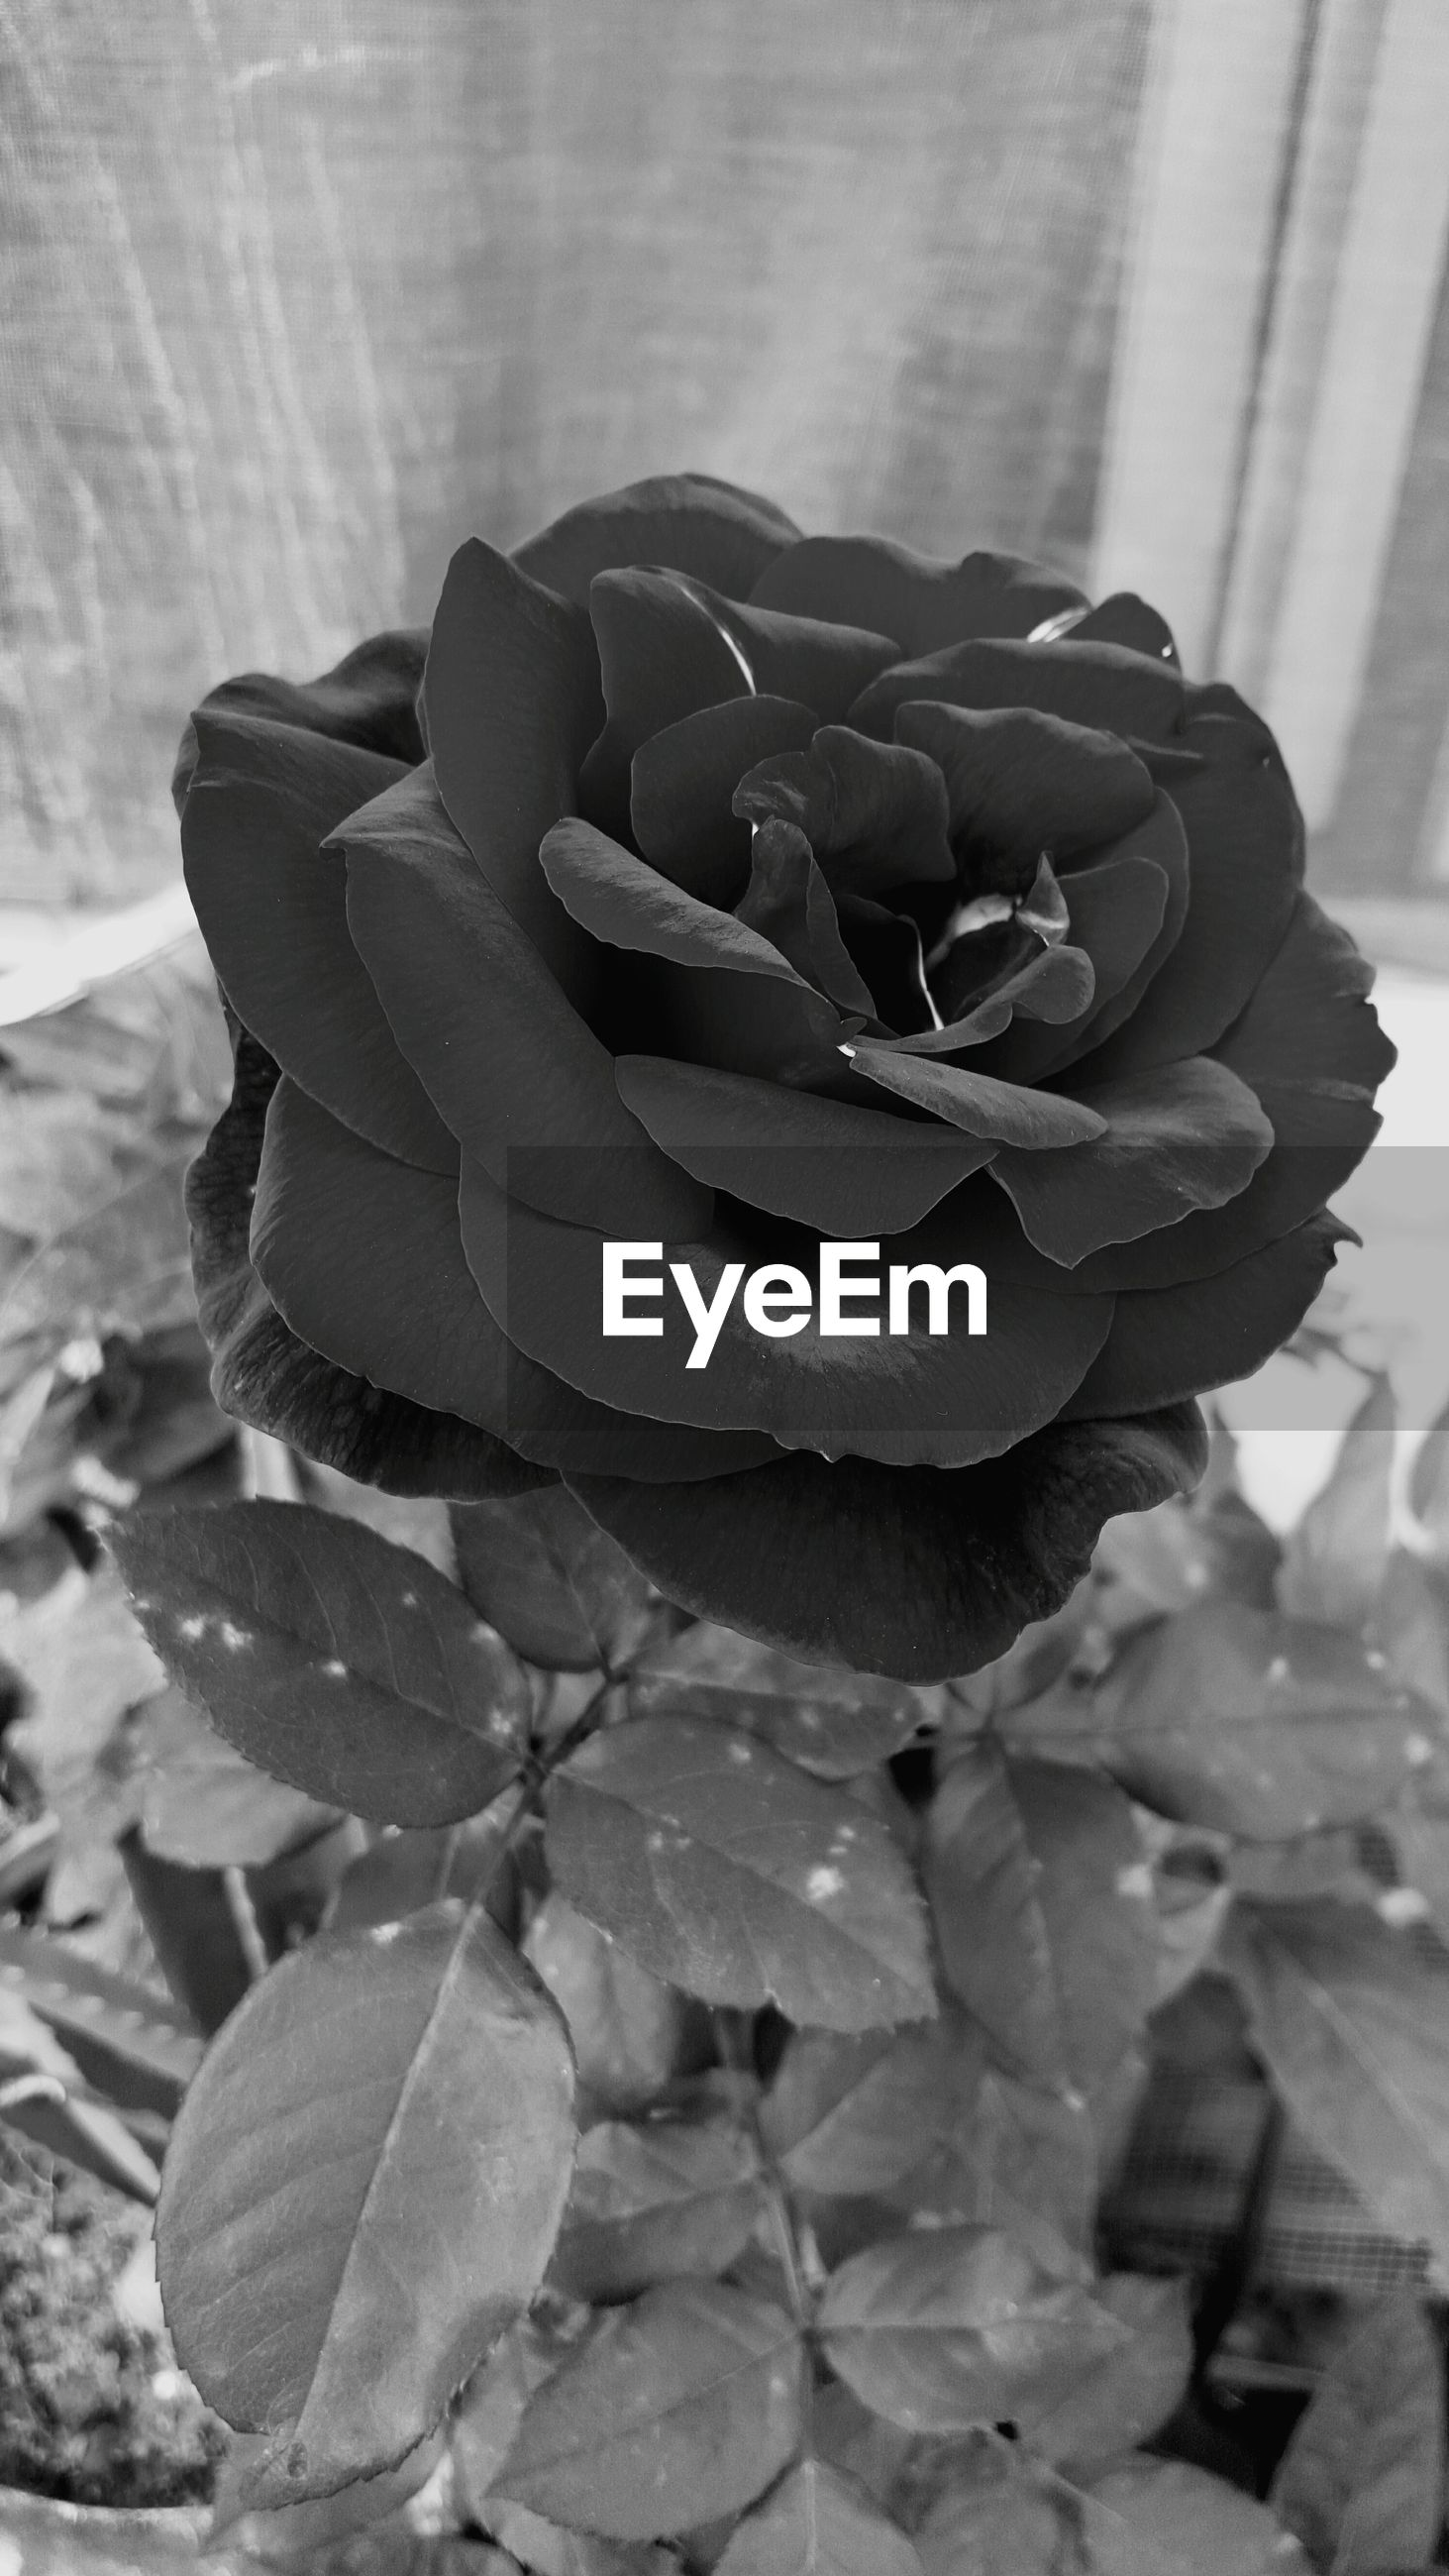 flower, rose - flower, freshness, close-up, petal, flower head, fragility, beauty in nature, focus on foreground, single flower, growth, nature, plant, leaf, rose, no people, blooming, single rose, day, natural pattern